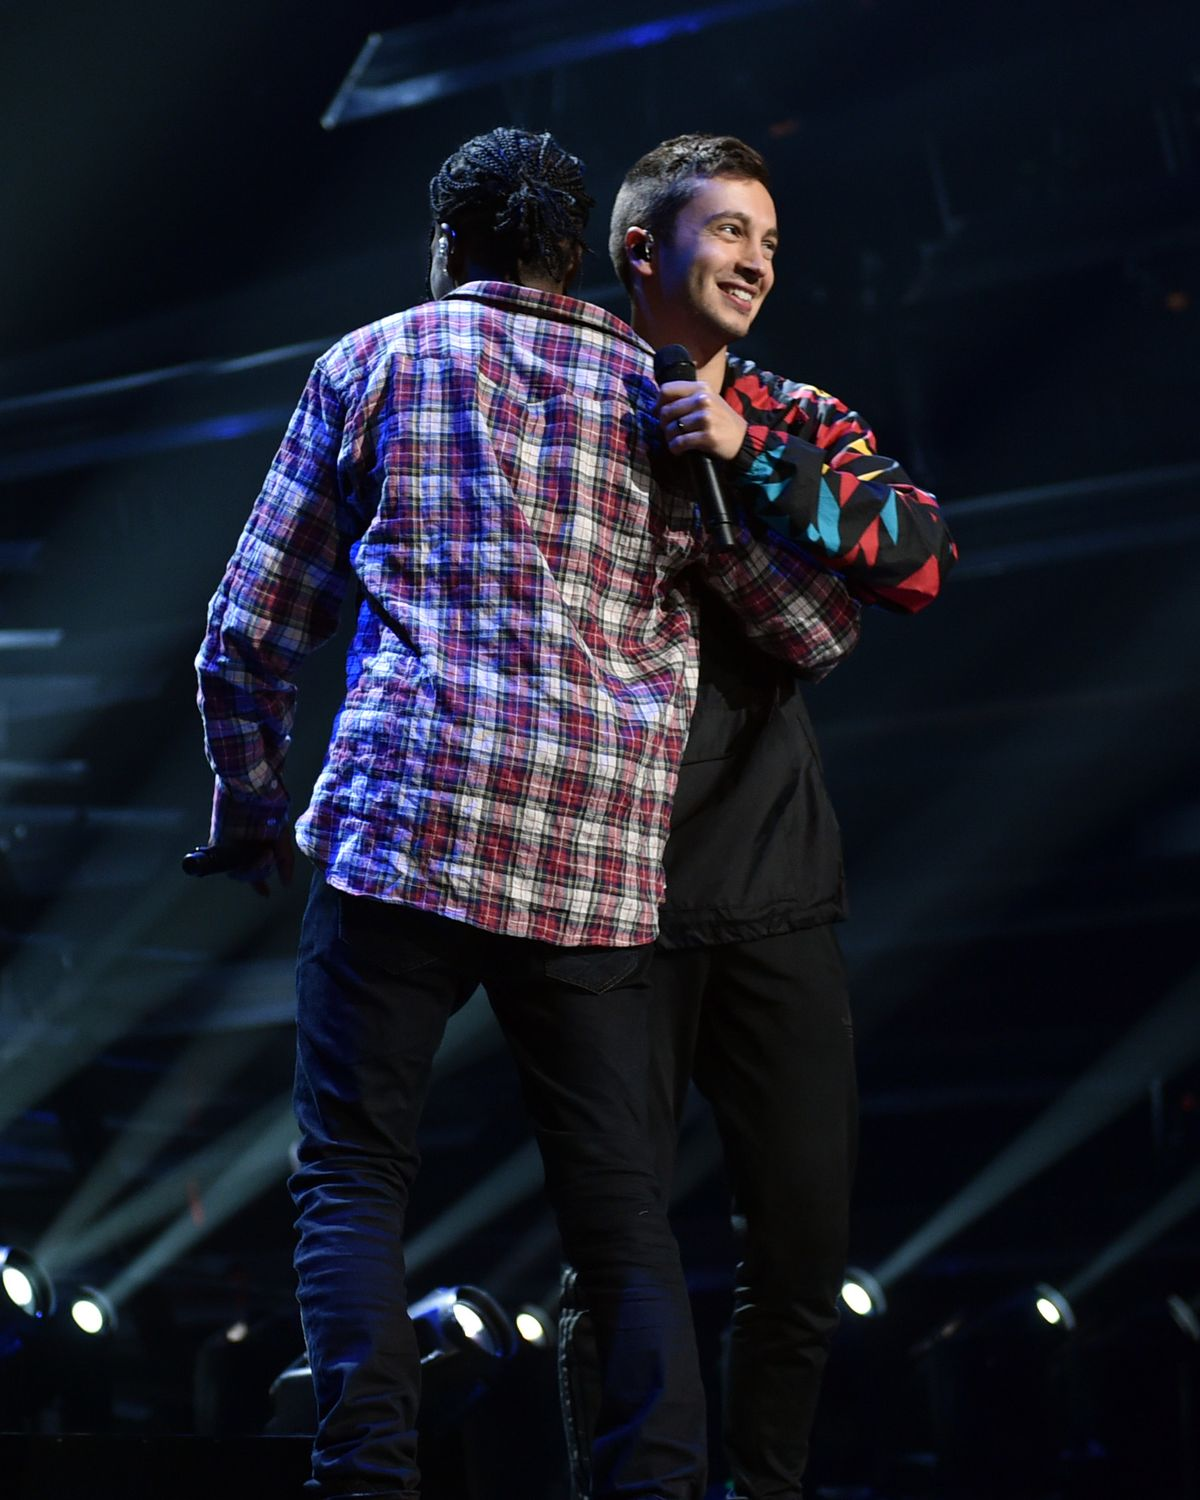 LOS ANGELES, CA - AUGUST 29:  Rapper ASAP Rocky (L) rehearses onstage with Tyler Joseph of Twenty One Pilots during rehearsals for the 2015 MTV Video Music Awards at Microsoft Theater on August 29, 2015 in Los Angeles, California.  (Photo by John Shearer/Getty Images for MTV.com)